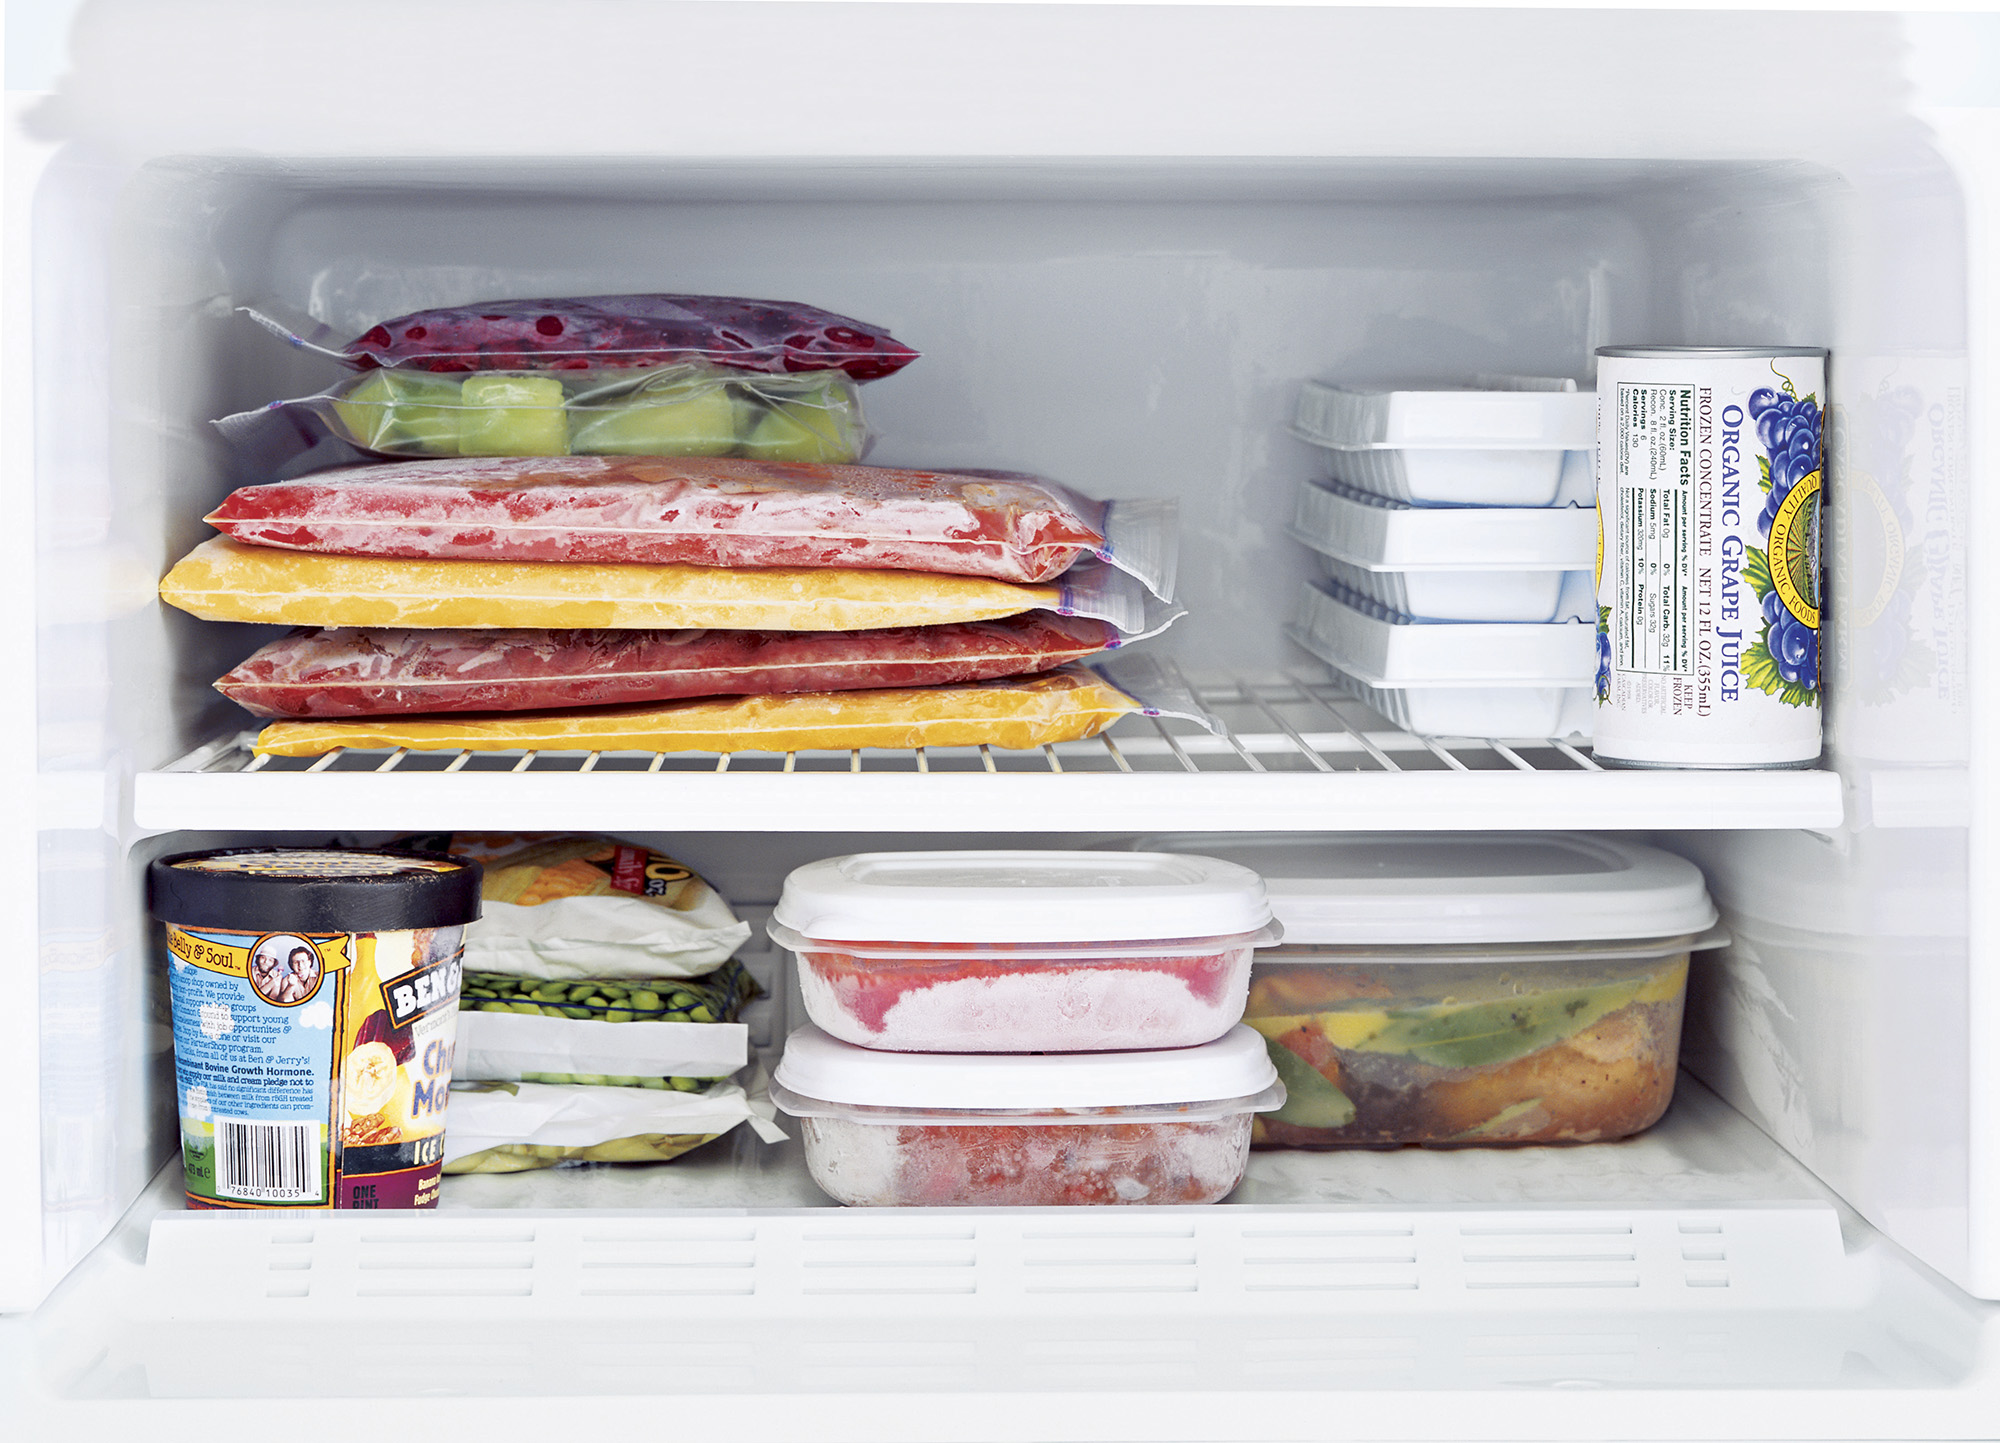 Freezer Interior With Frozen Dinners Ziploc Items Ice Tray